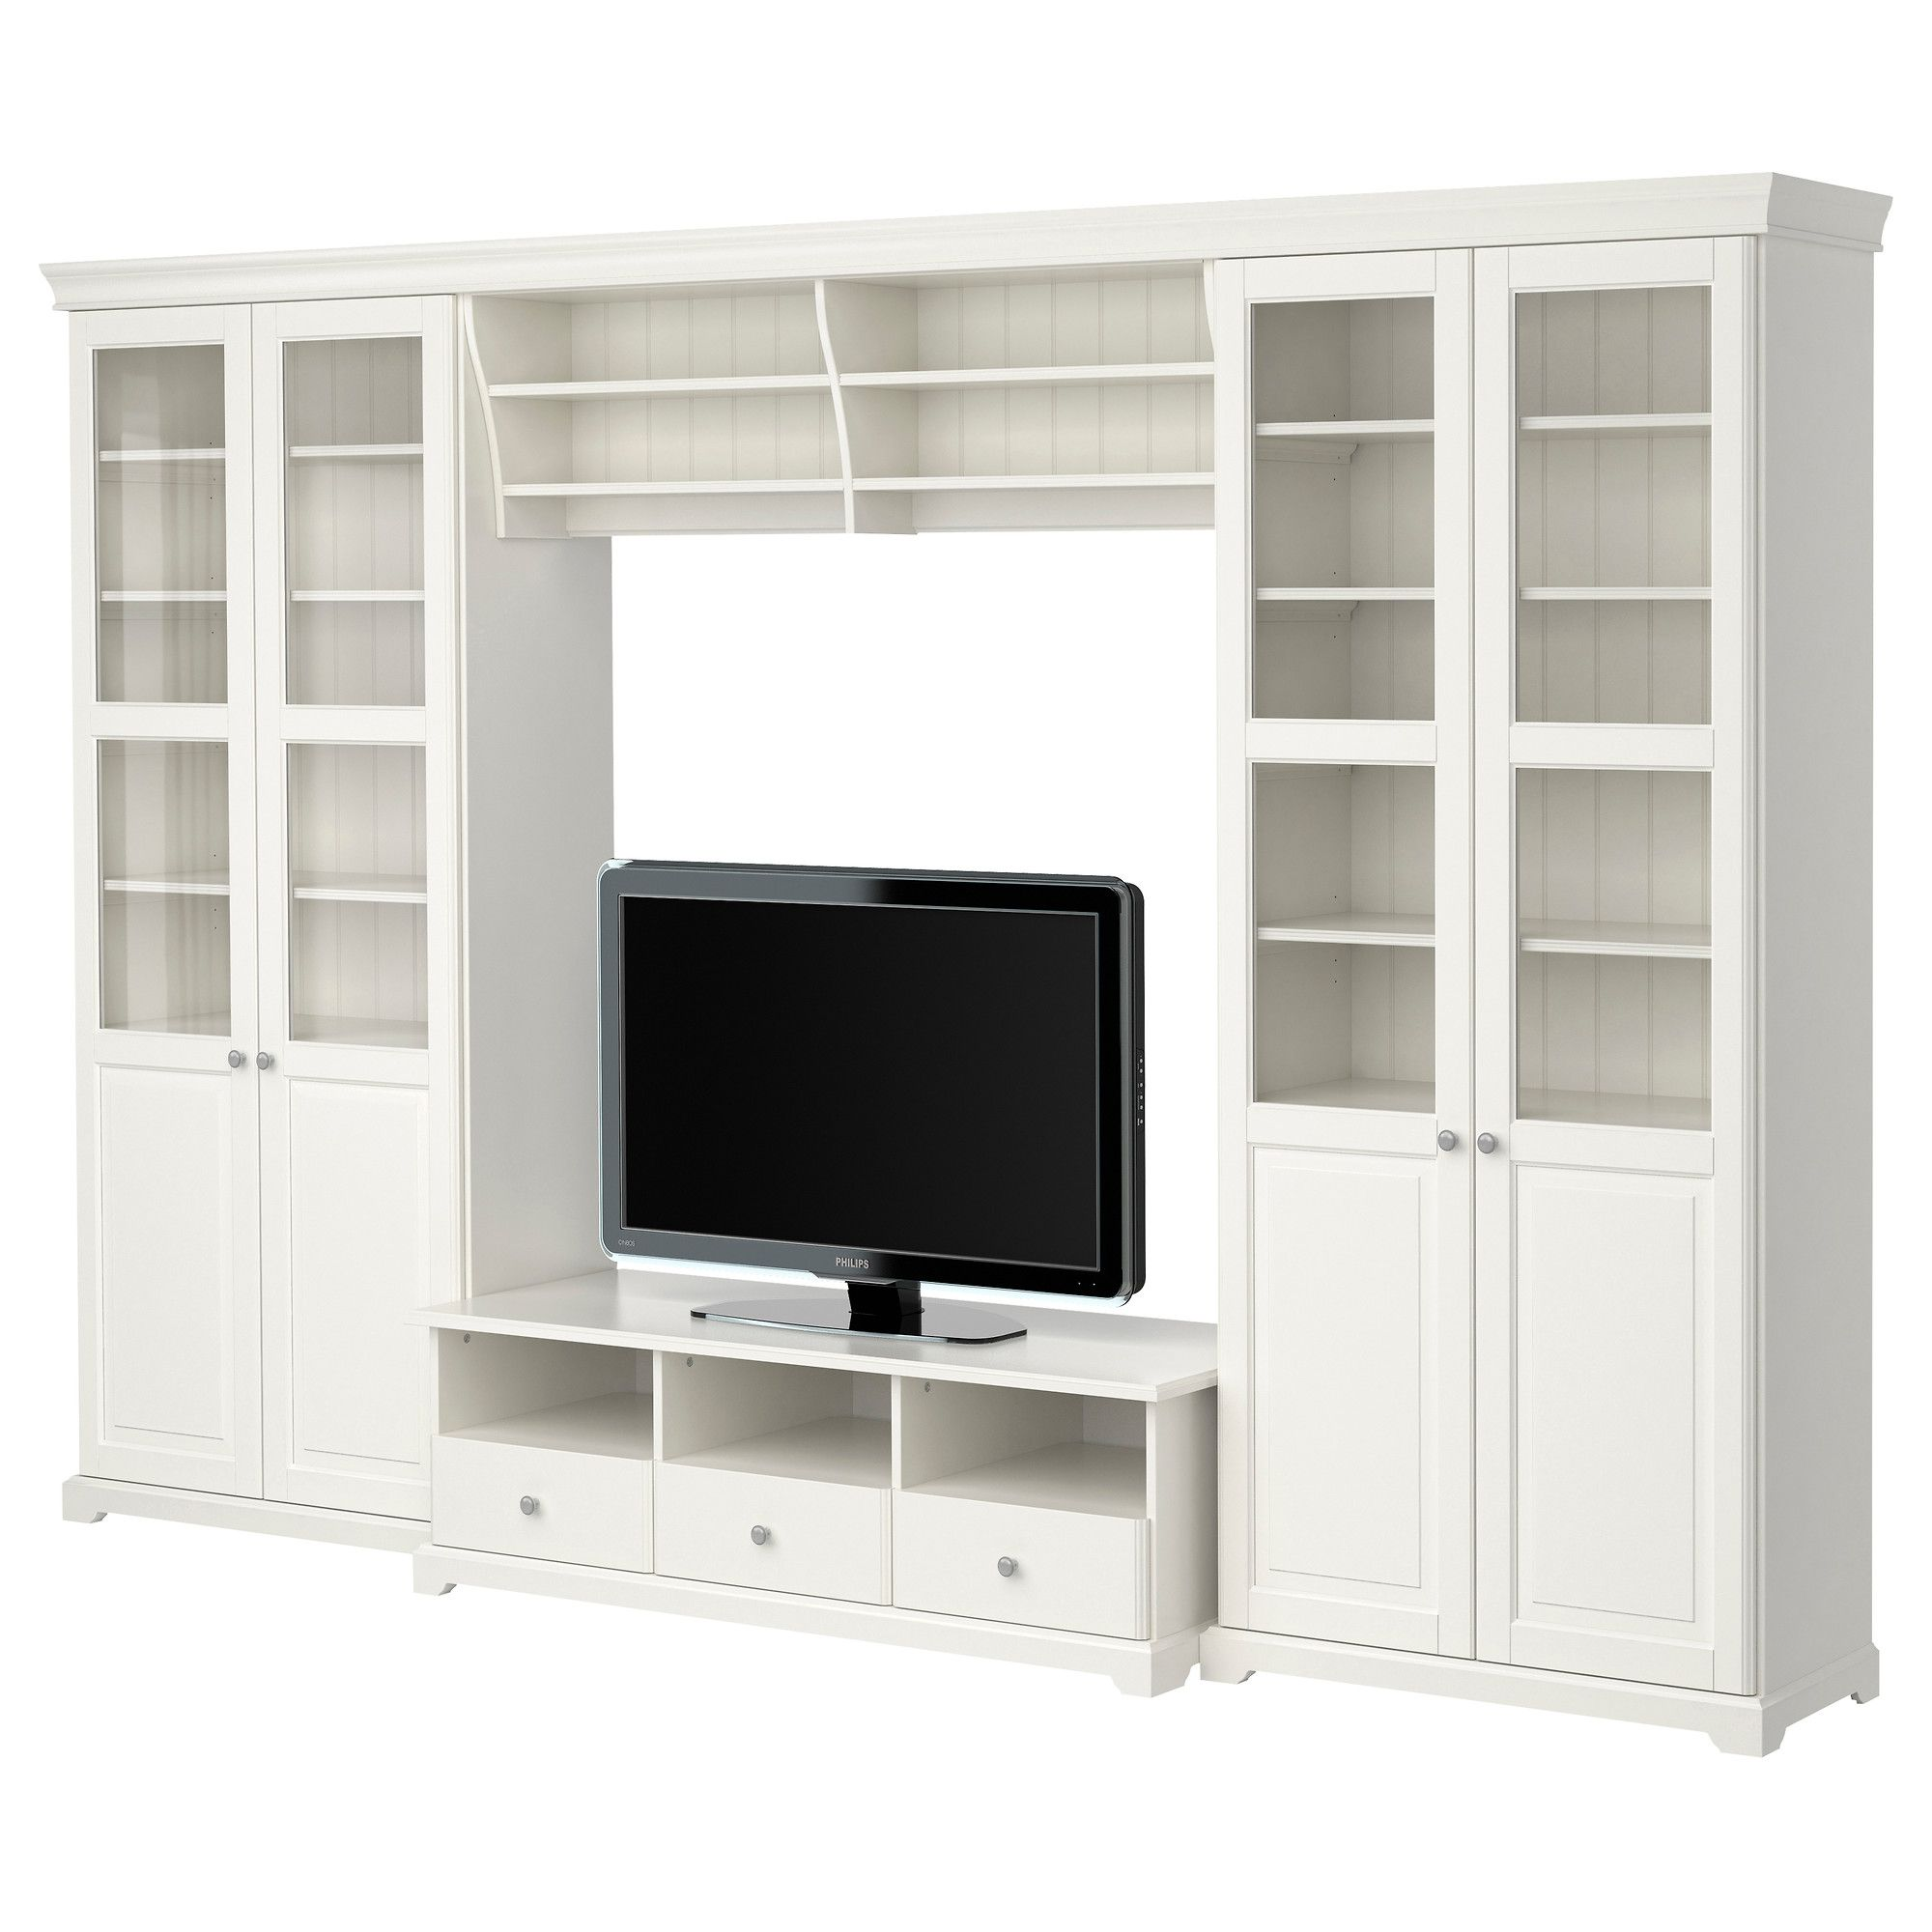 LIATORP TV storage bination white